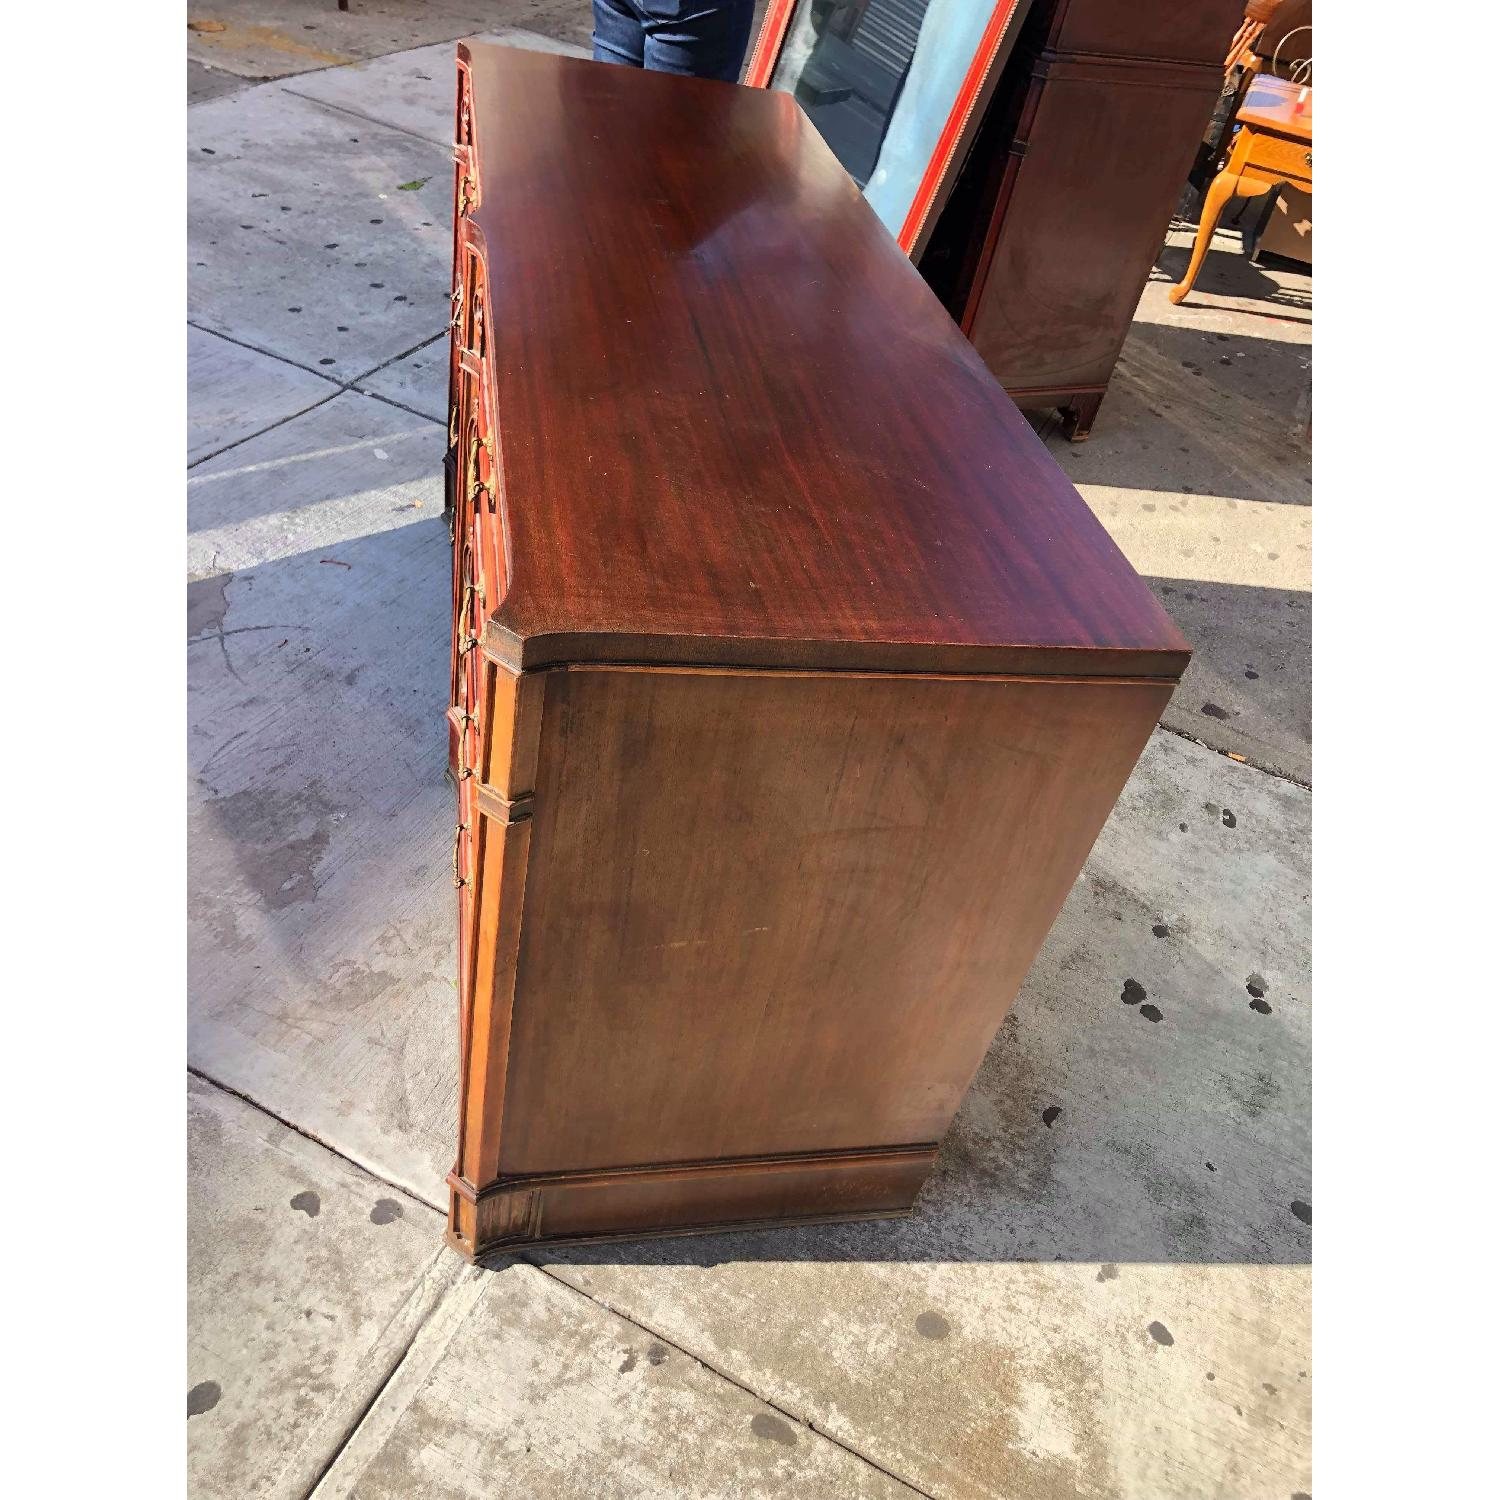 Antique 1930s Cherry Wood Leather Front 8 Drawer Dresser - image-15